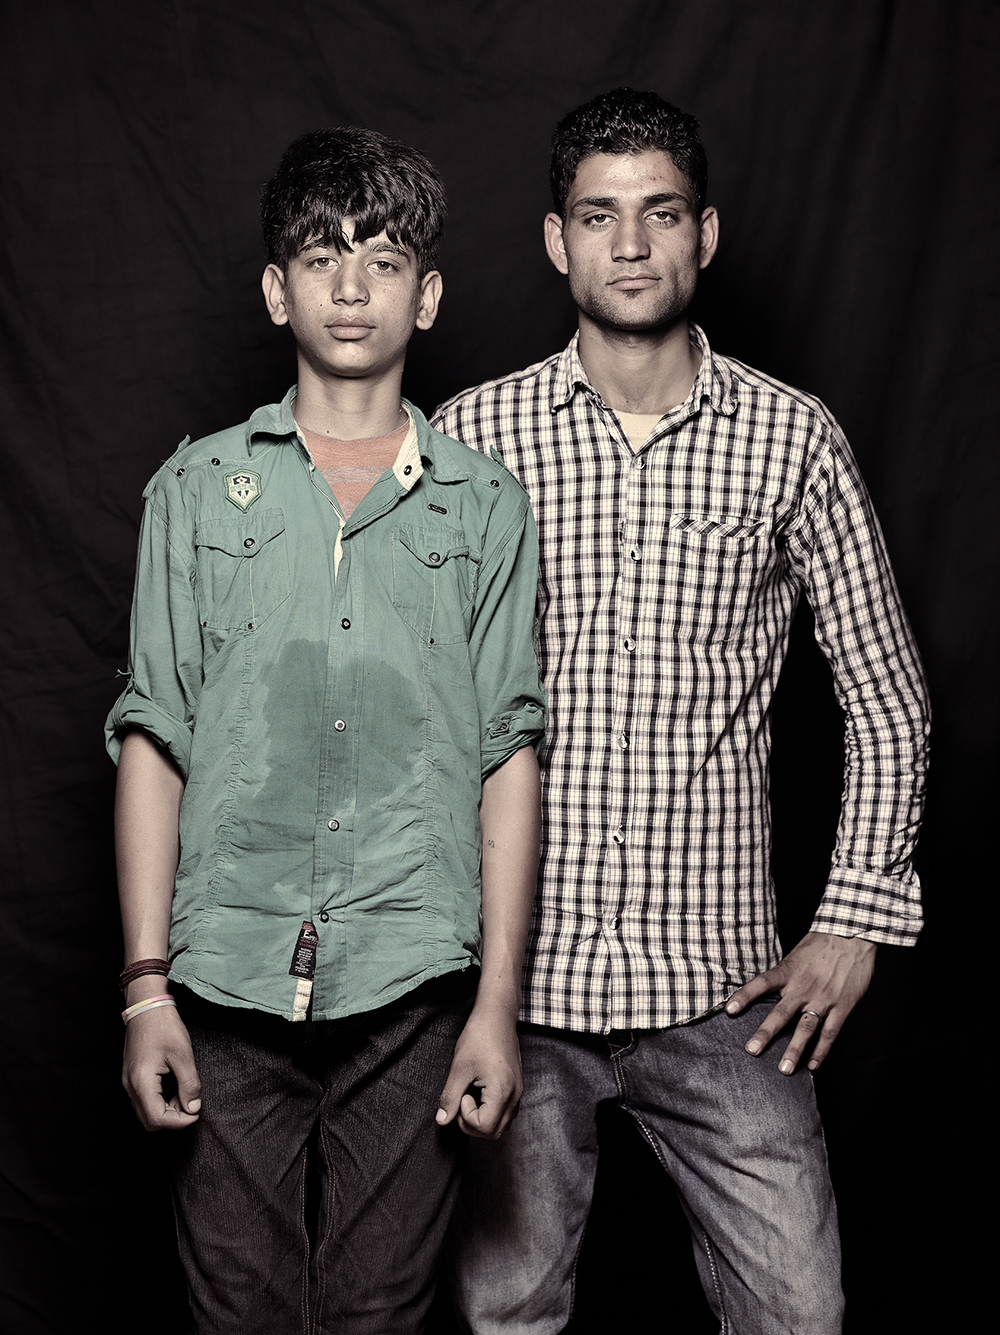 Omar Shah, 14 and Sunil Bhutt, 21, D-camp, 2013